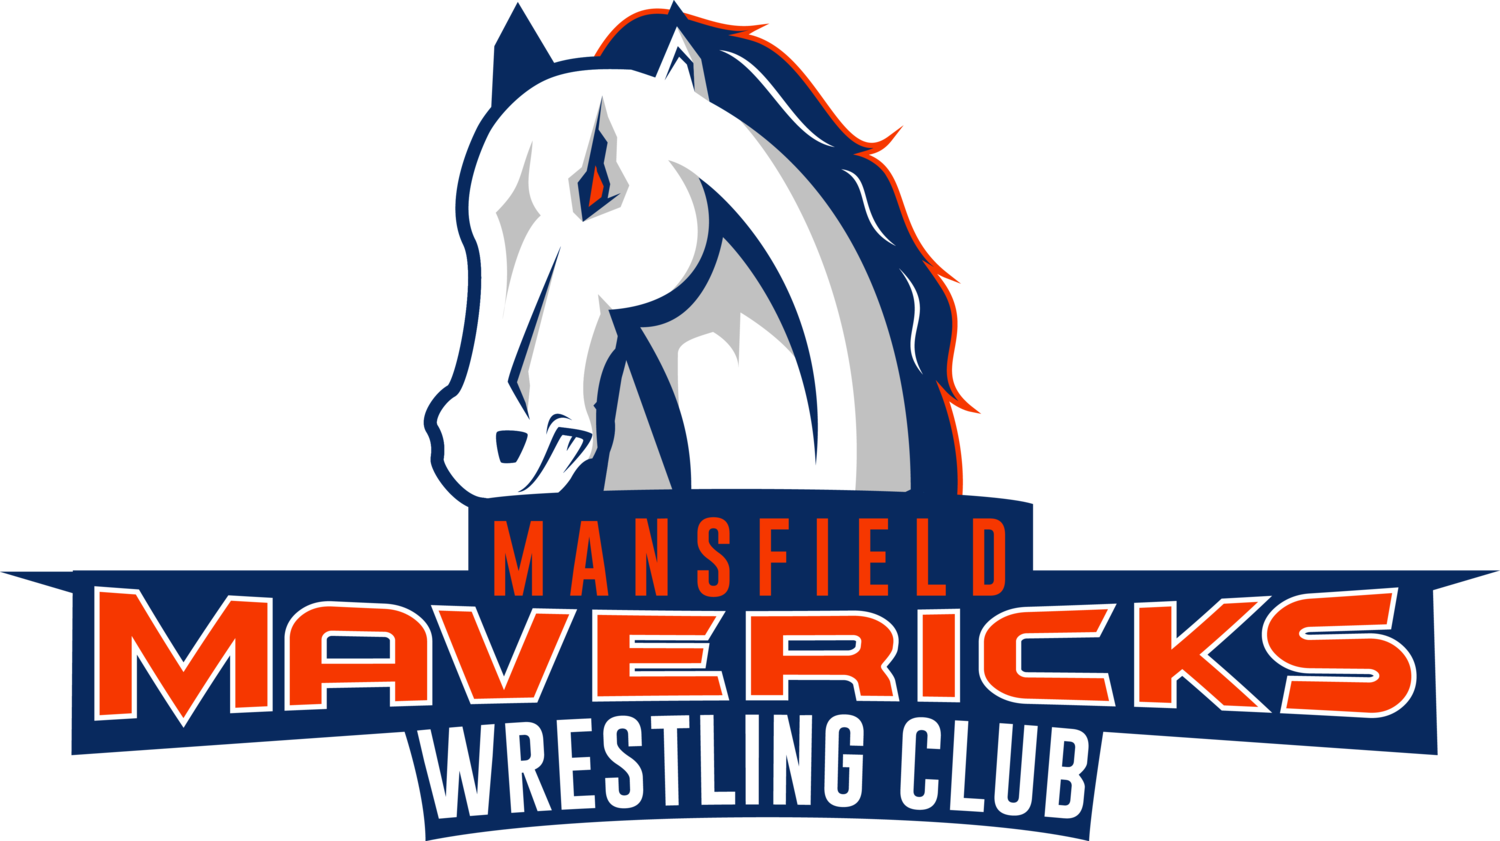 Wrestlers clipart wrestling coach. Our coaches mansfield club